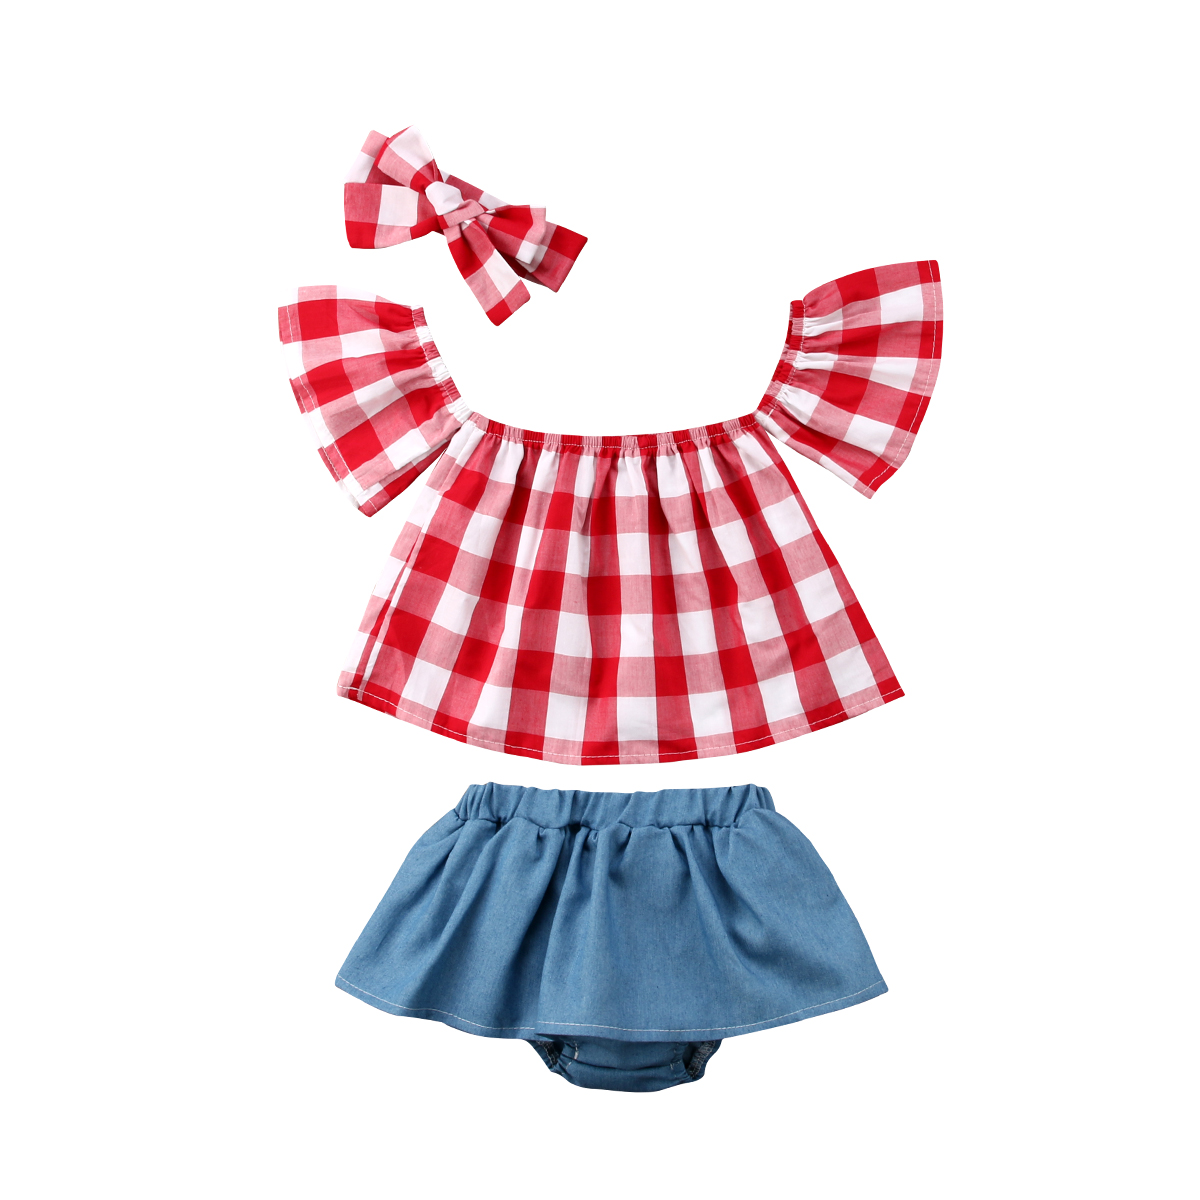 3PCS Toddler Kids Baby Girls Clothing Summer T-shirt Tops Short Sleeve Short Headbands Outfits Clothes Set Girl 0-3T 3pcs newborn baby girls bowknot clothes 2018 summer striped toddler kids clothing set t shirt shorts headband bebek giyim